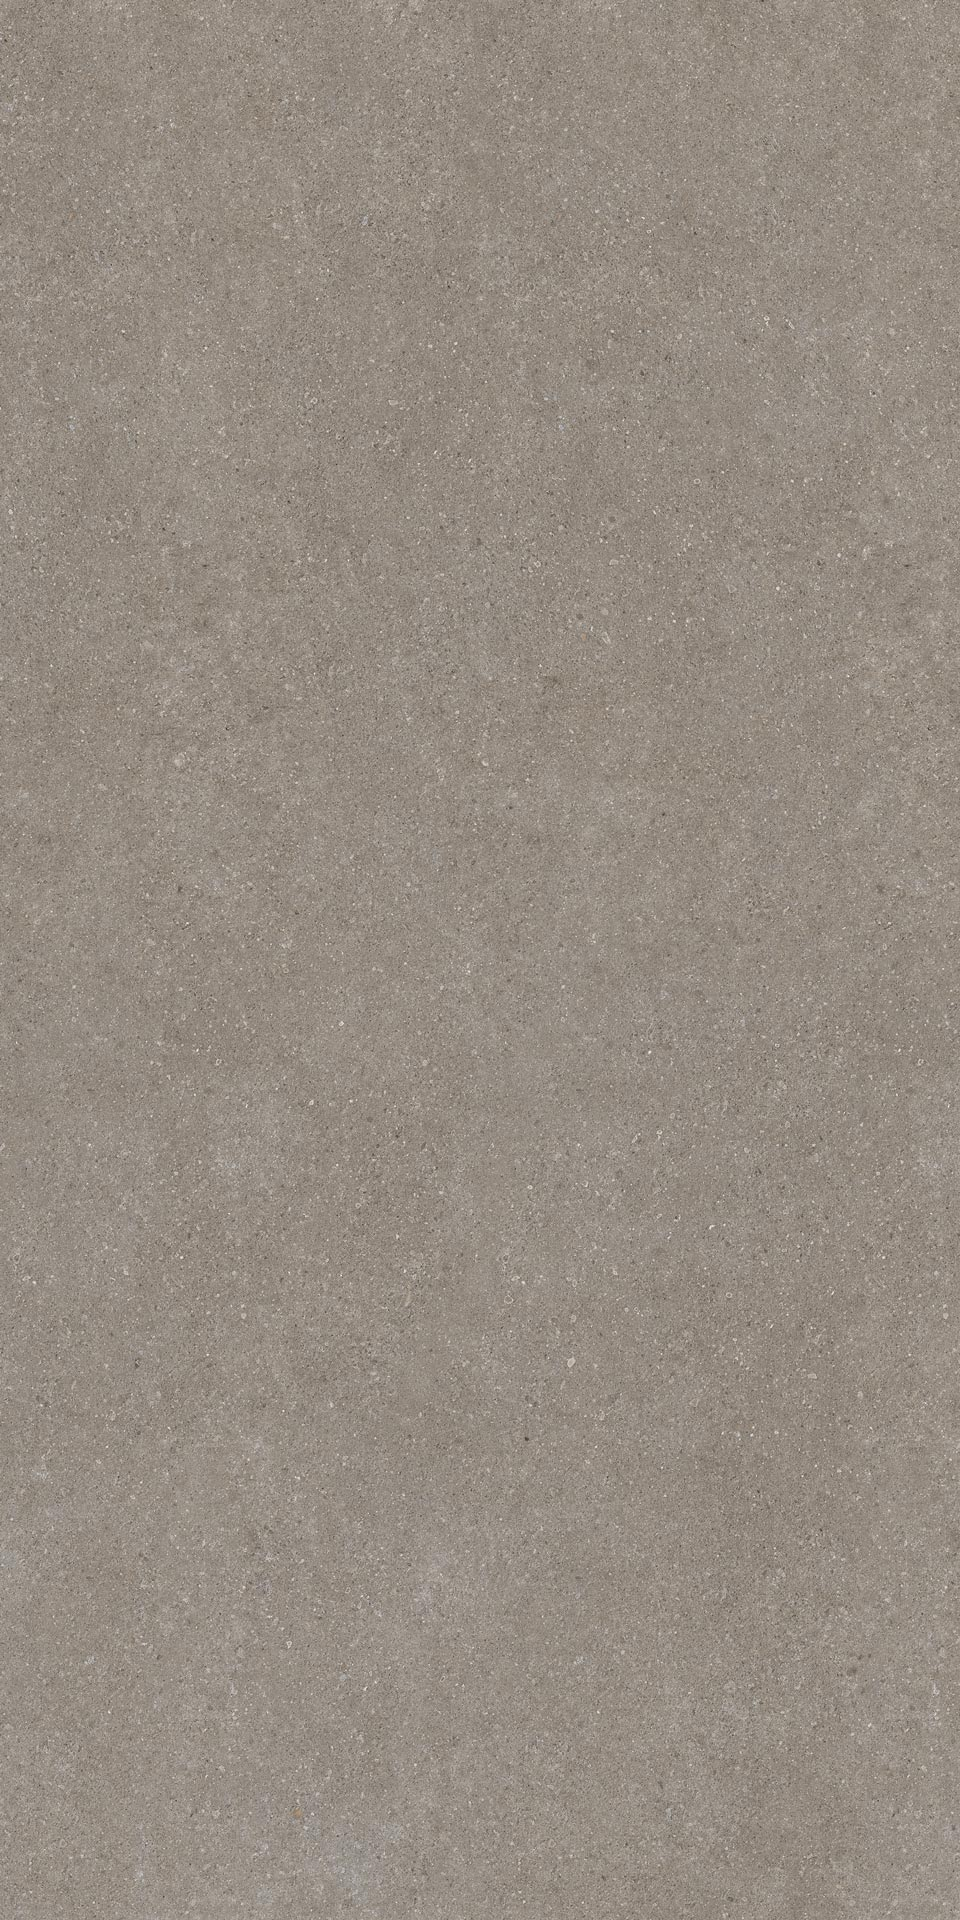 atlas-plan-large-surface-in-porcelain-stoneware-for-indoor-and-outdoor-kone-grey